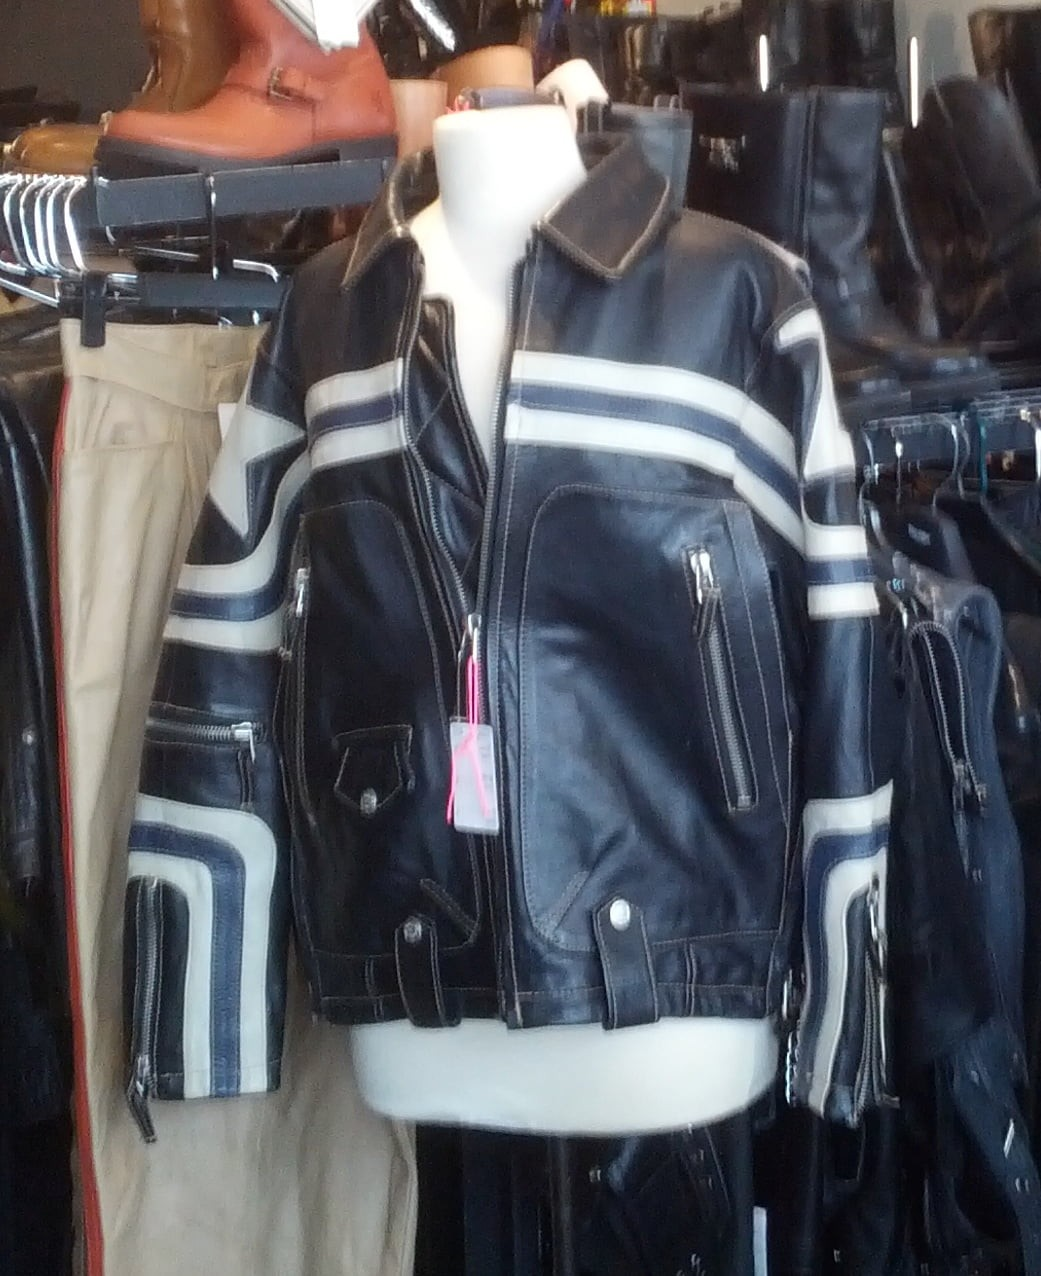 Have you seen this jacket on a thief?